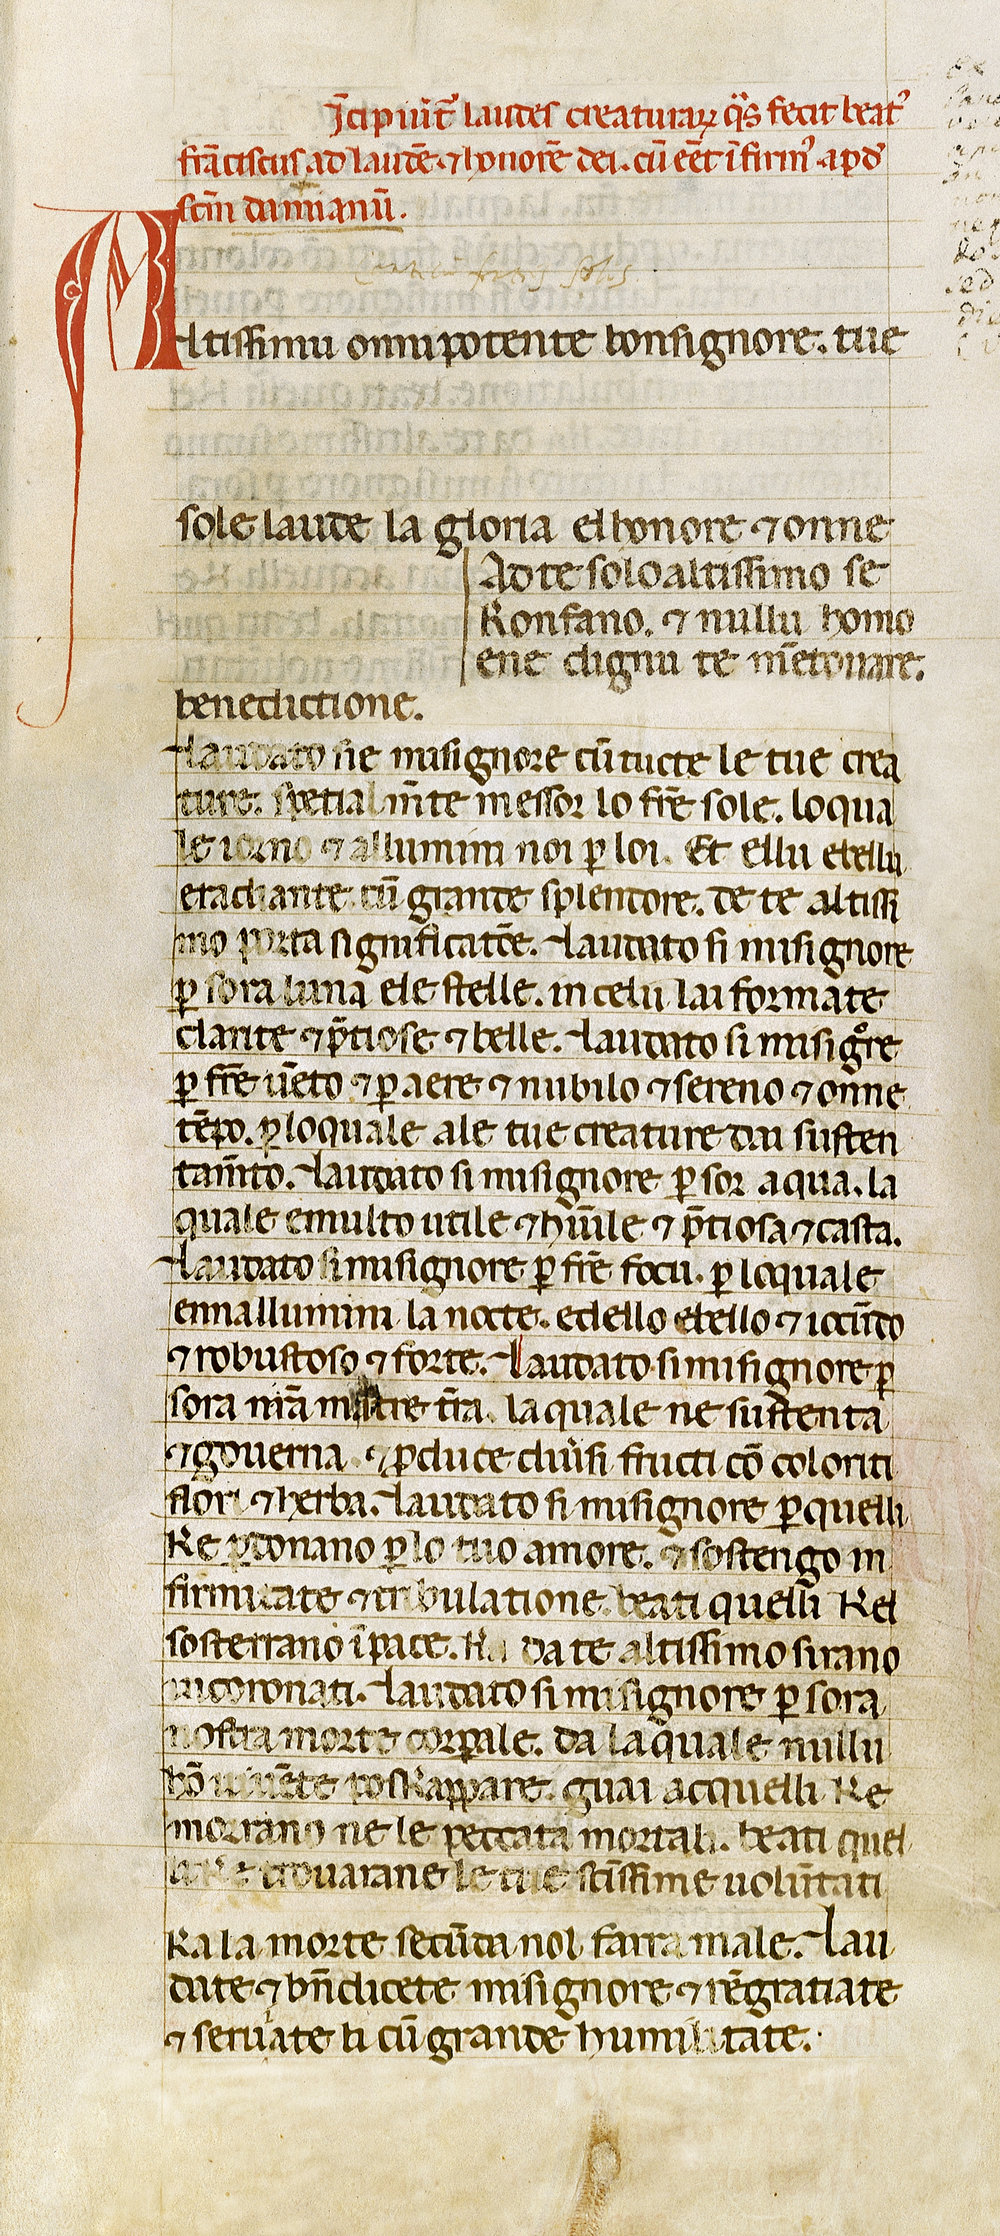 Fig. 1.  Codex 338, fols. 33r-34r, (composite), Biblioteca Communale Fondo Antico San Francesco, Assisi. Image ©1999 Stefan Diller Wuerzburg (www.assisi.de). Used by permission.